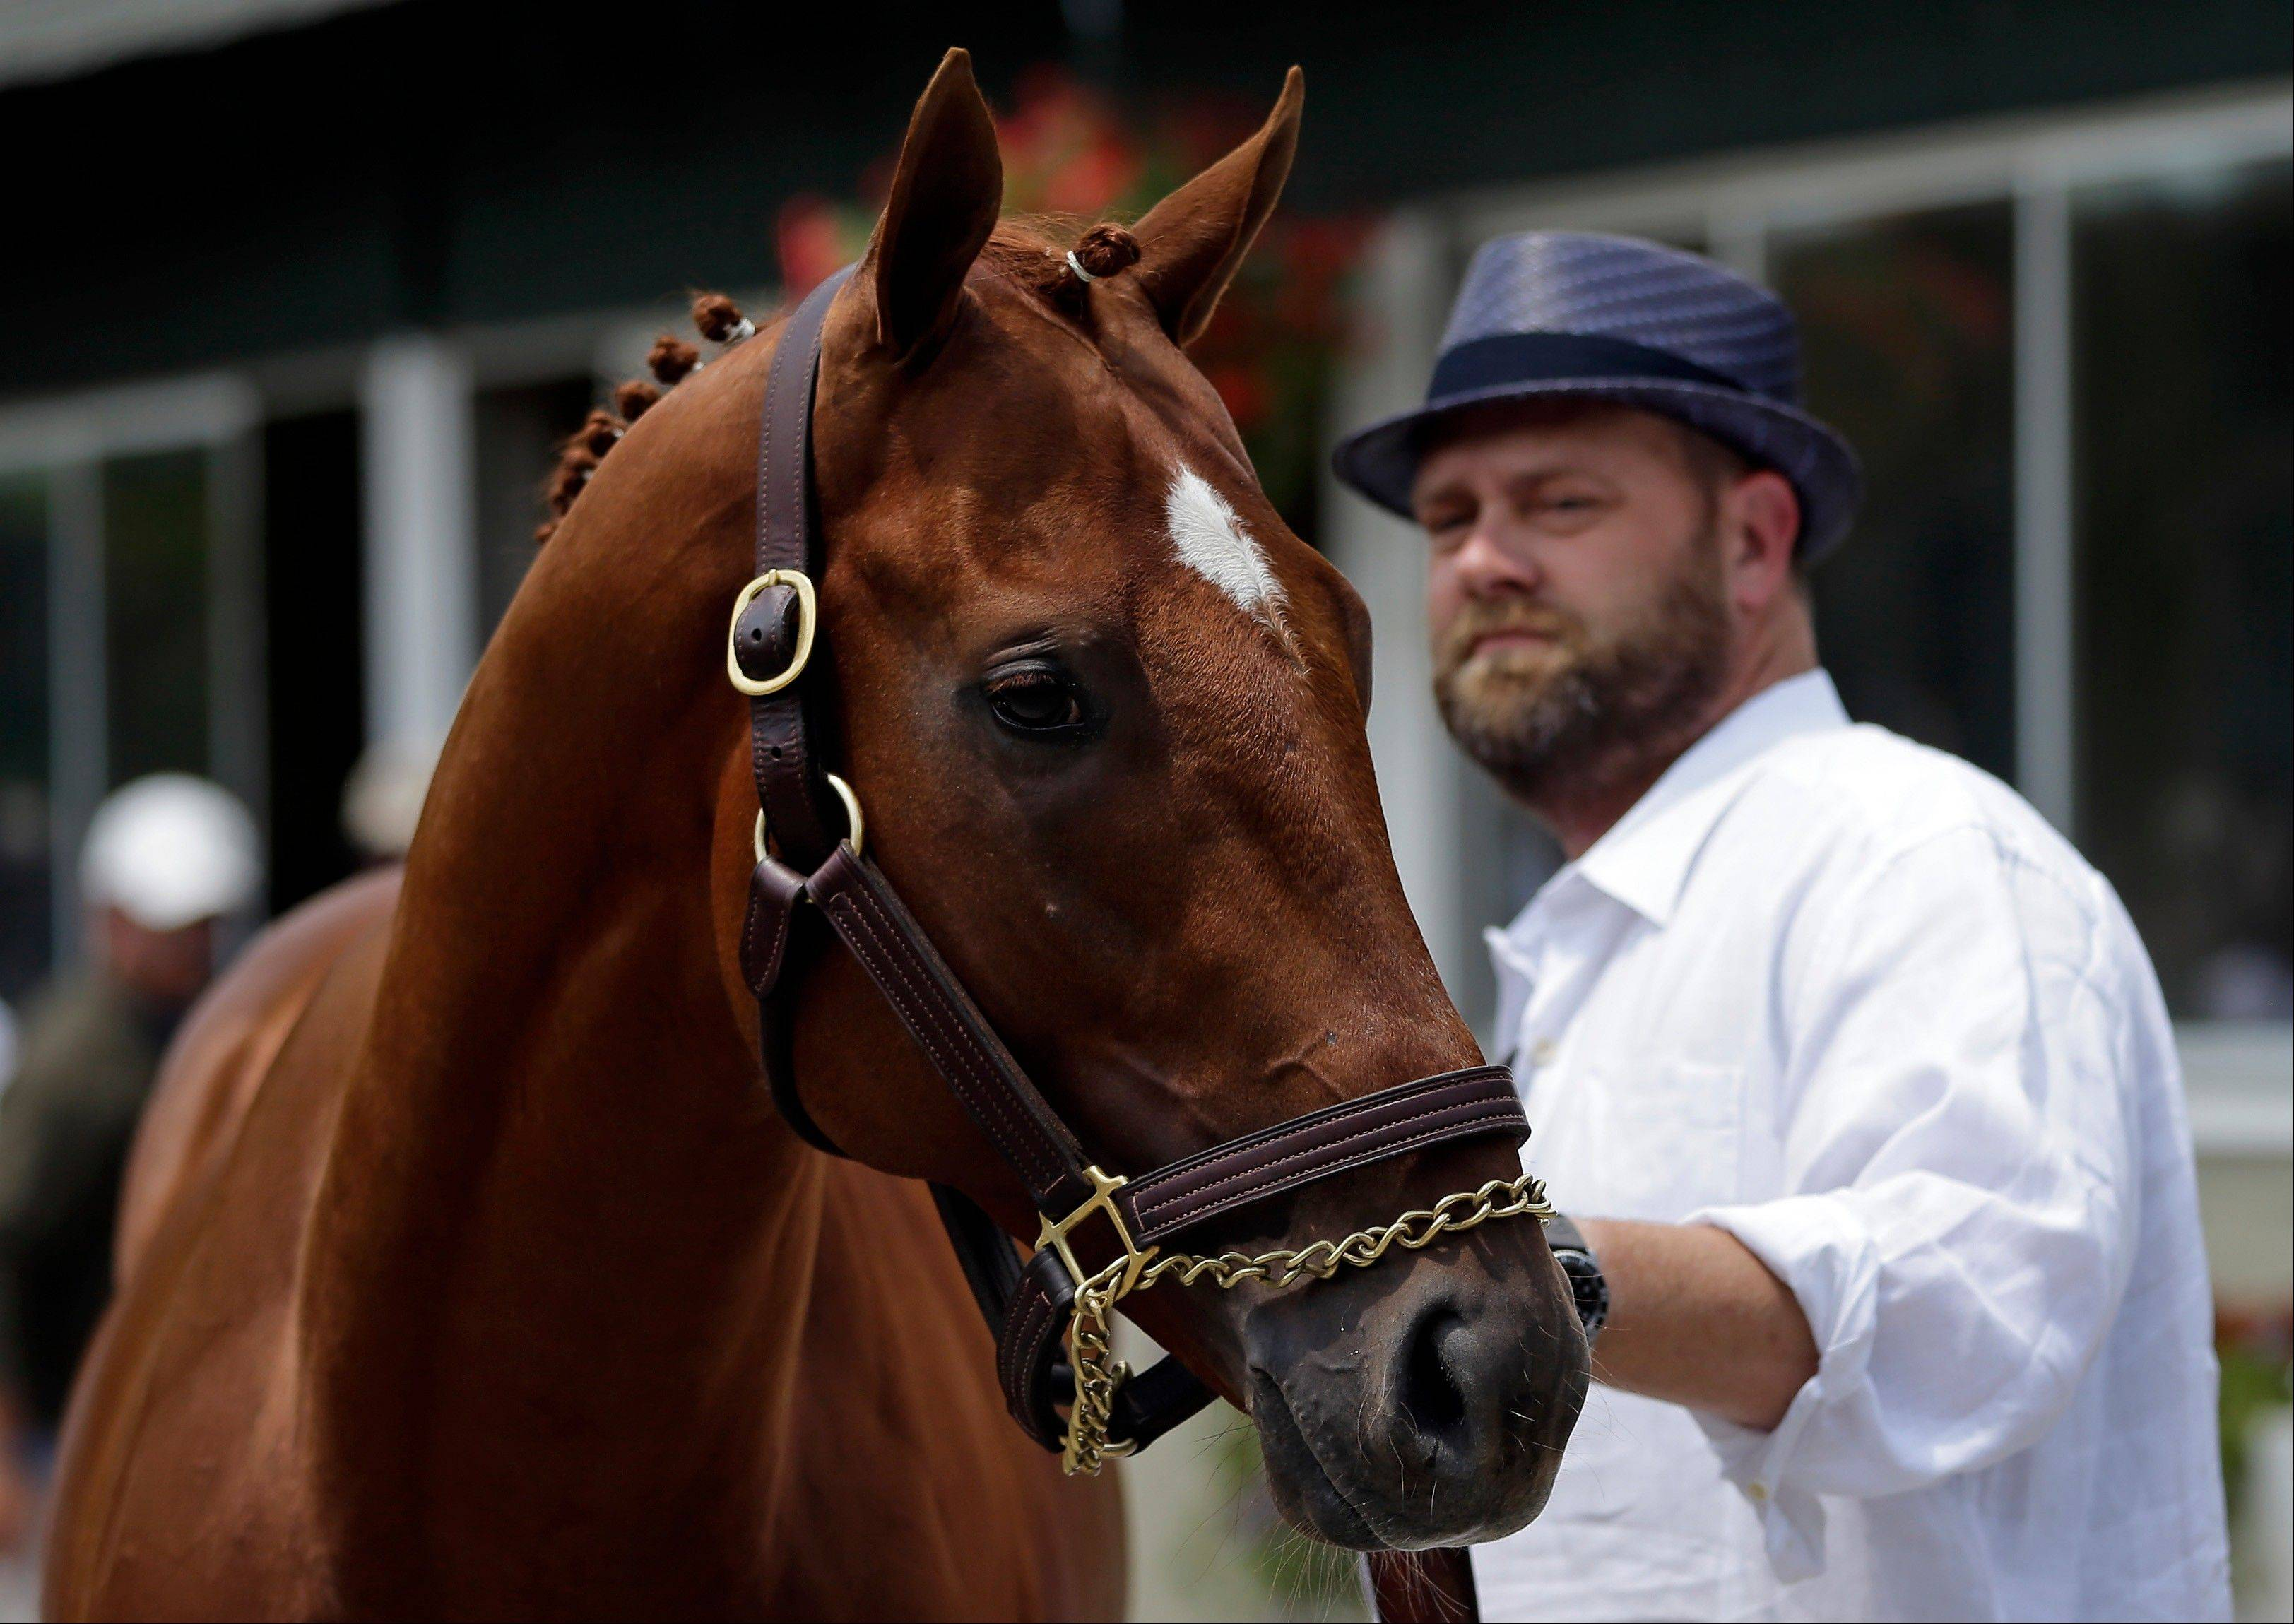 Kentucky Derby and Preakness winner I'll Have Another stands with trainer Doug O'Neill during a news conference at Belmont Park on Friday. Mike Imrem believes I'll Have Another was scratched from his shot at the Triple Crown for all the right reasons.